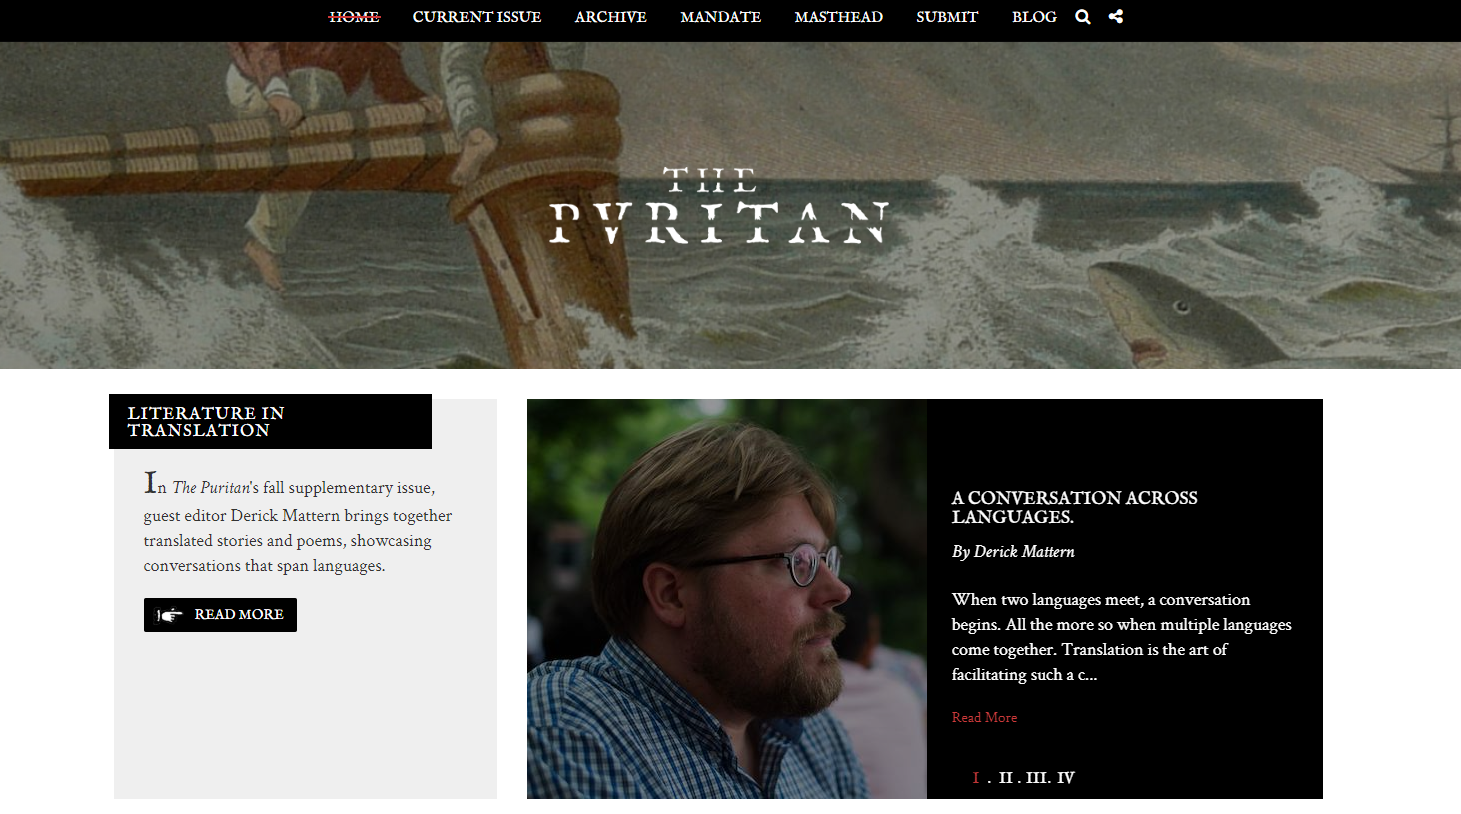 The Puritan magazine home page